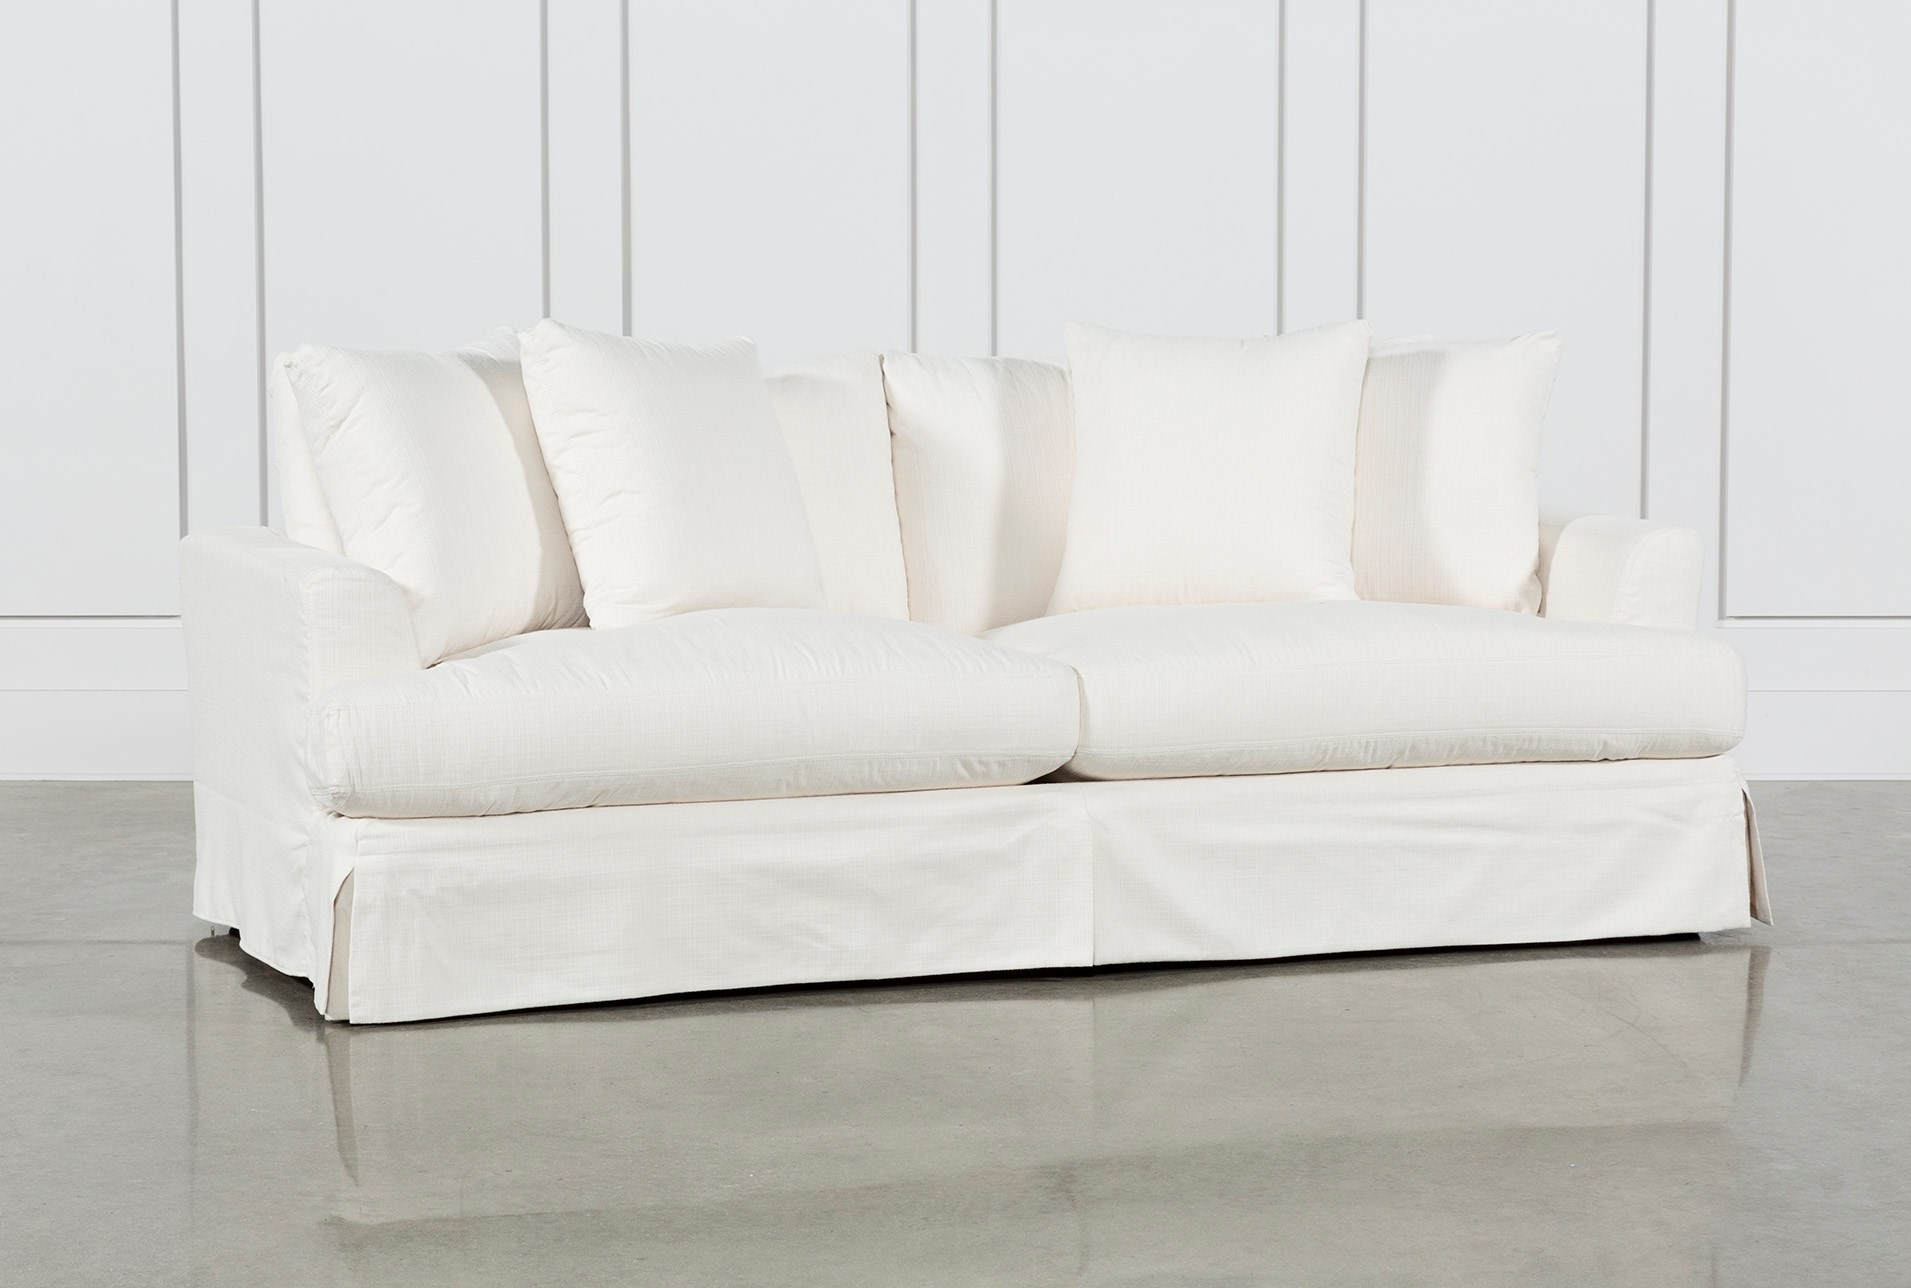 Solano Slipcovered Sofa